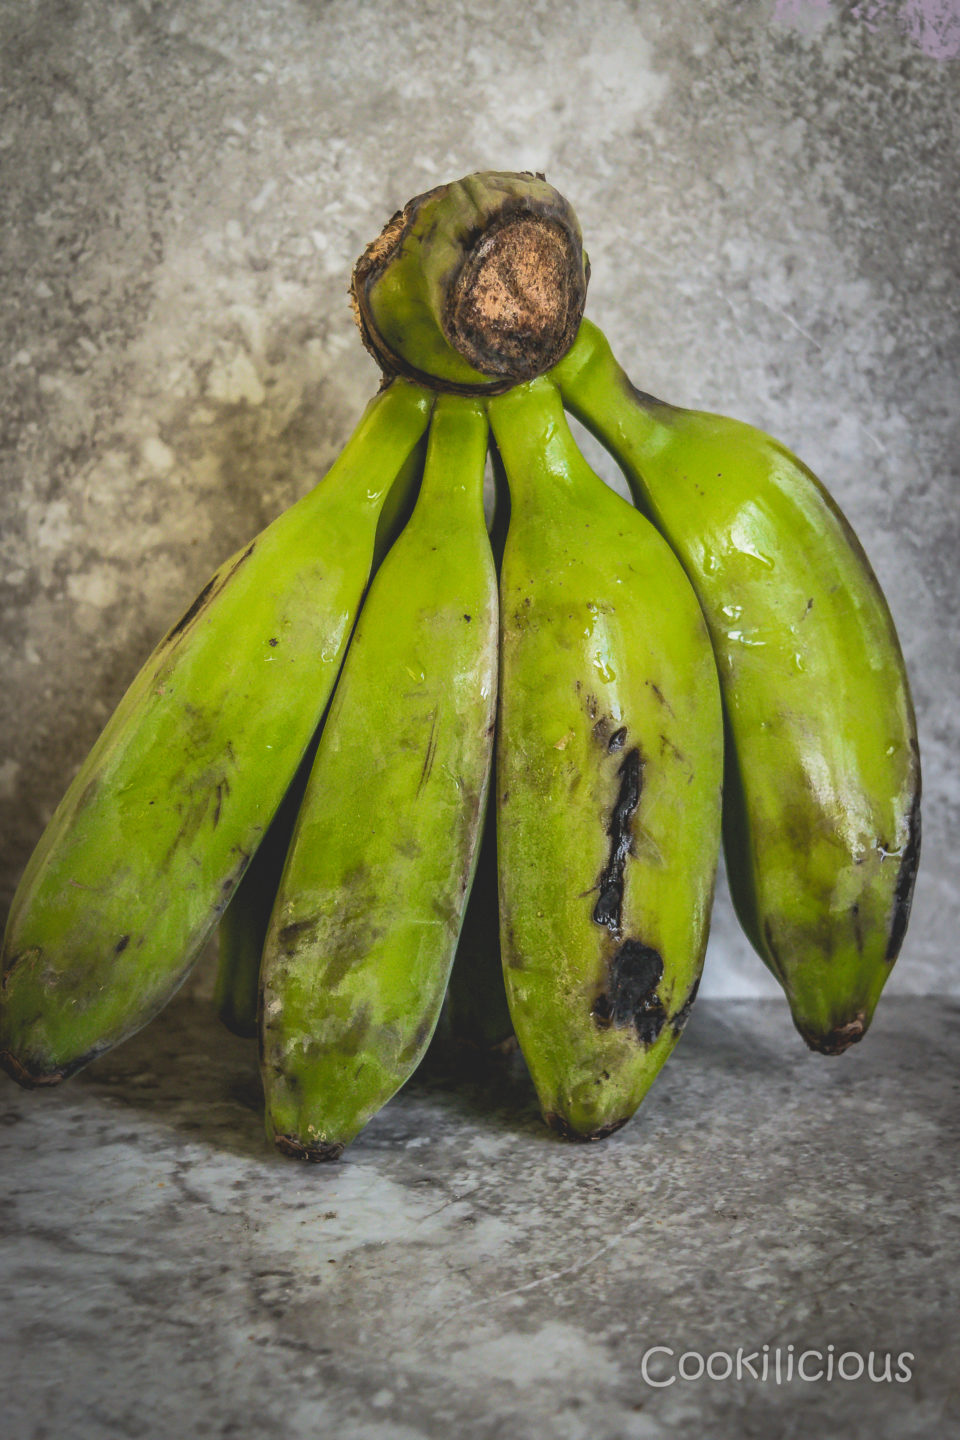 image of plantains or cooking banana